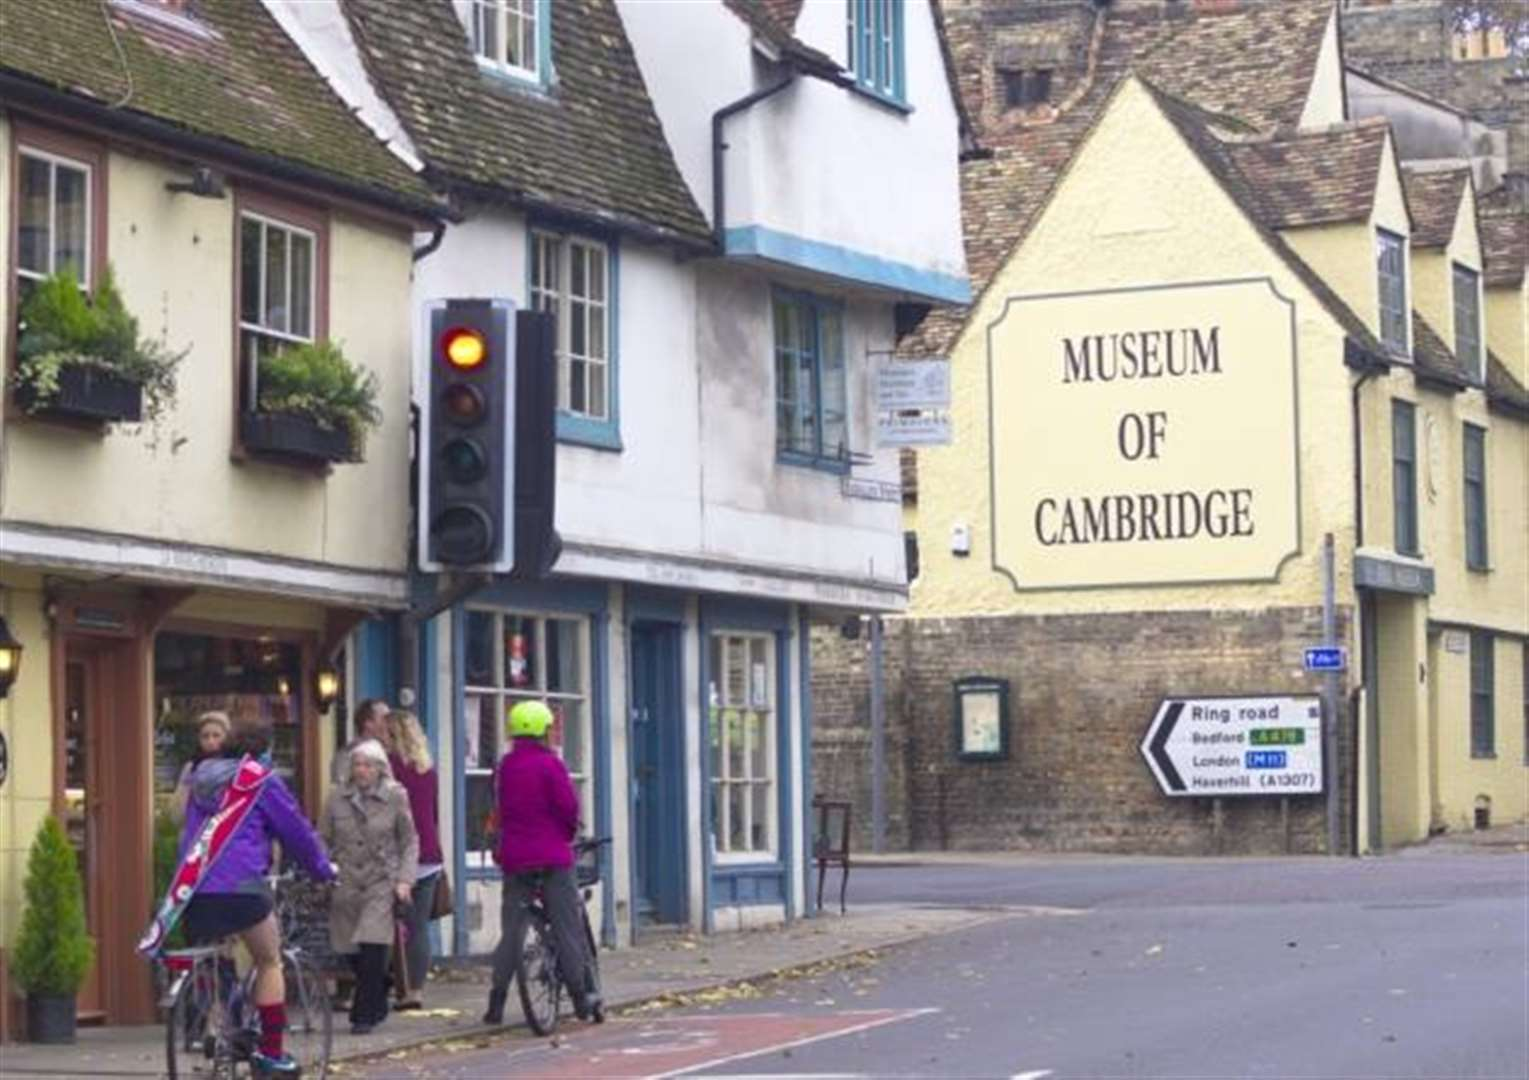 Fundraising appeal to be launched to help save Museum of Cambridge